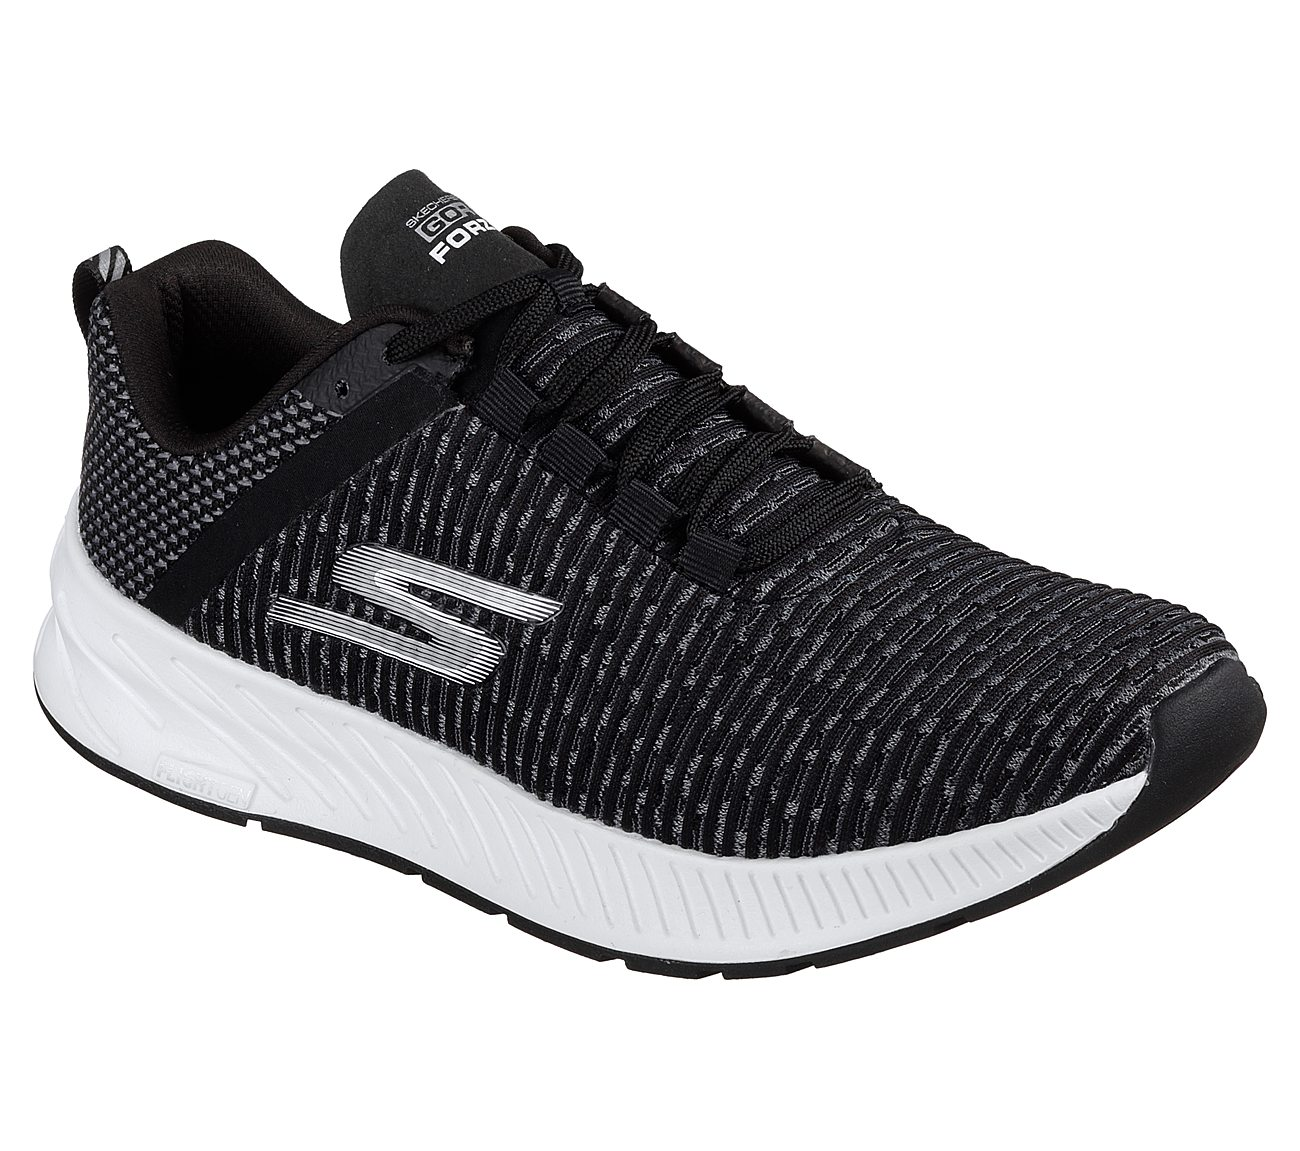 550eb5dd4078 Buy SKECHERS Skechers GOrun Forza 3 Skechers Performance Shoes only ...